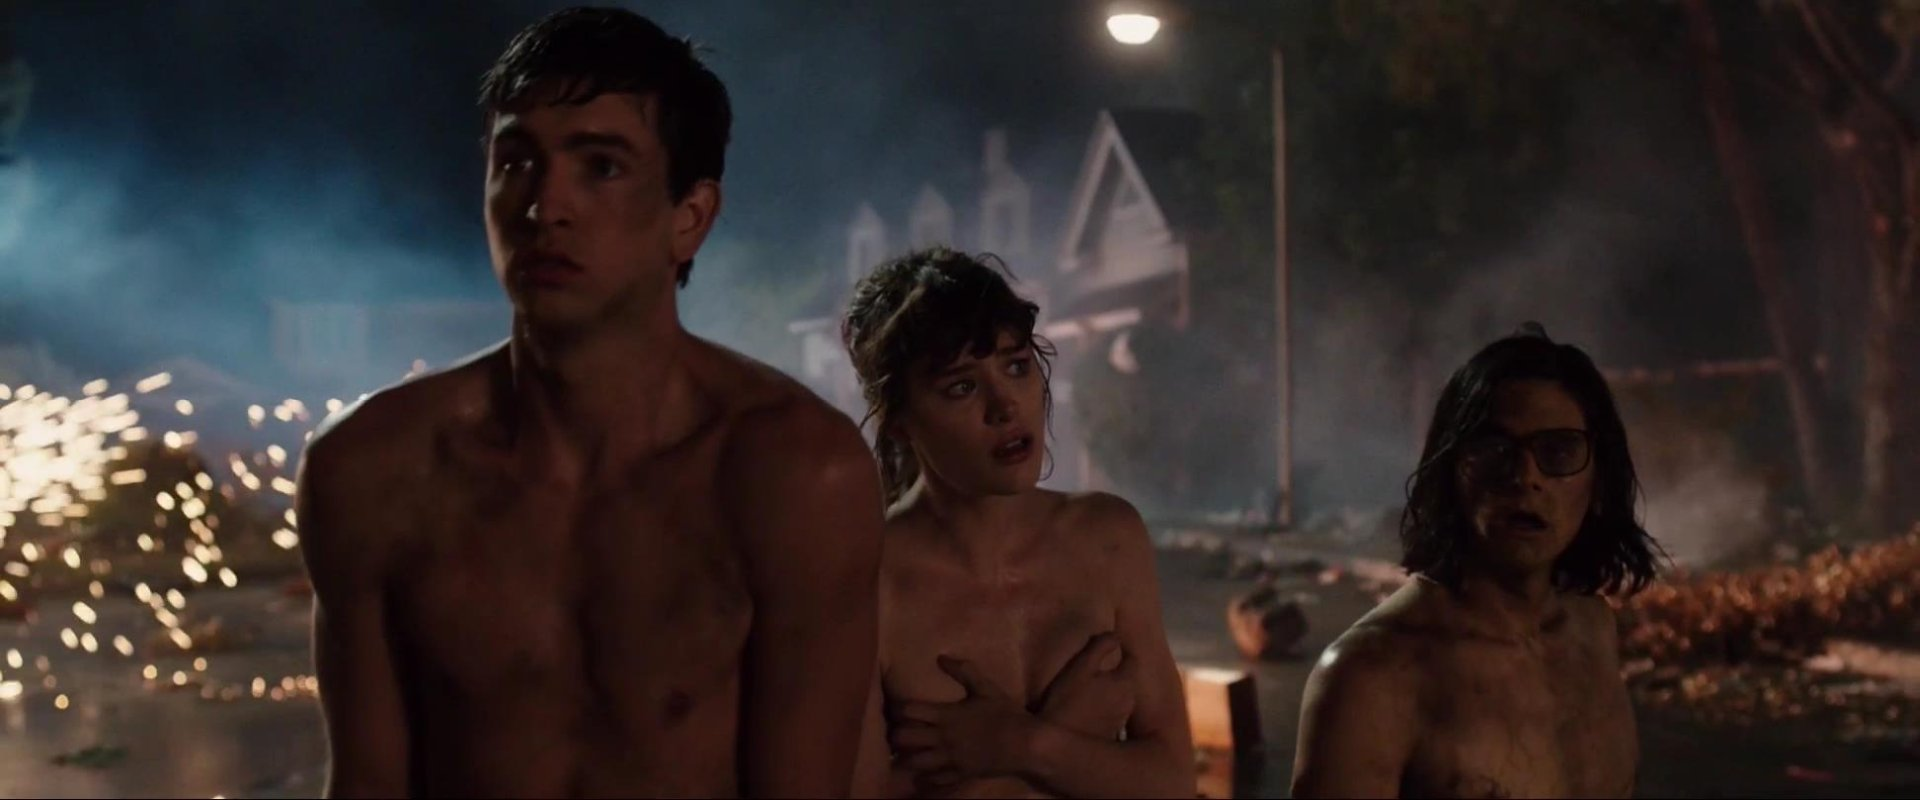 Excellent blade runner naked video